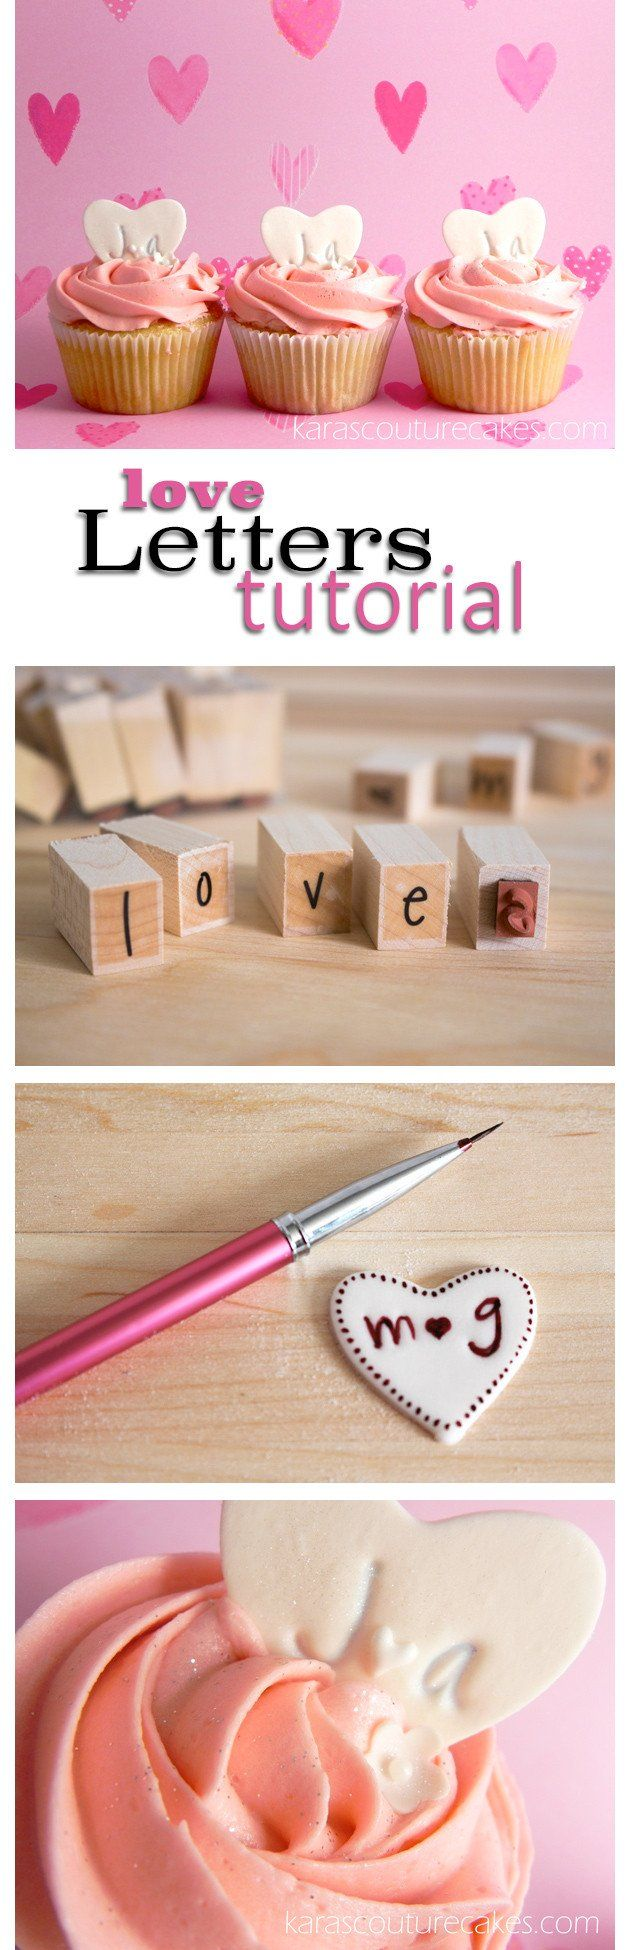 Love Letters Tutorial